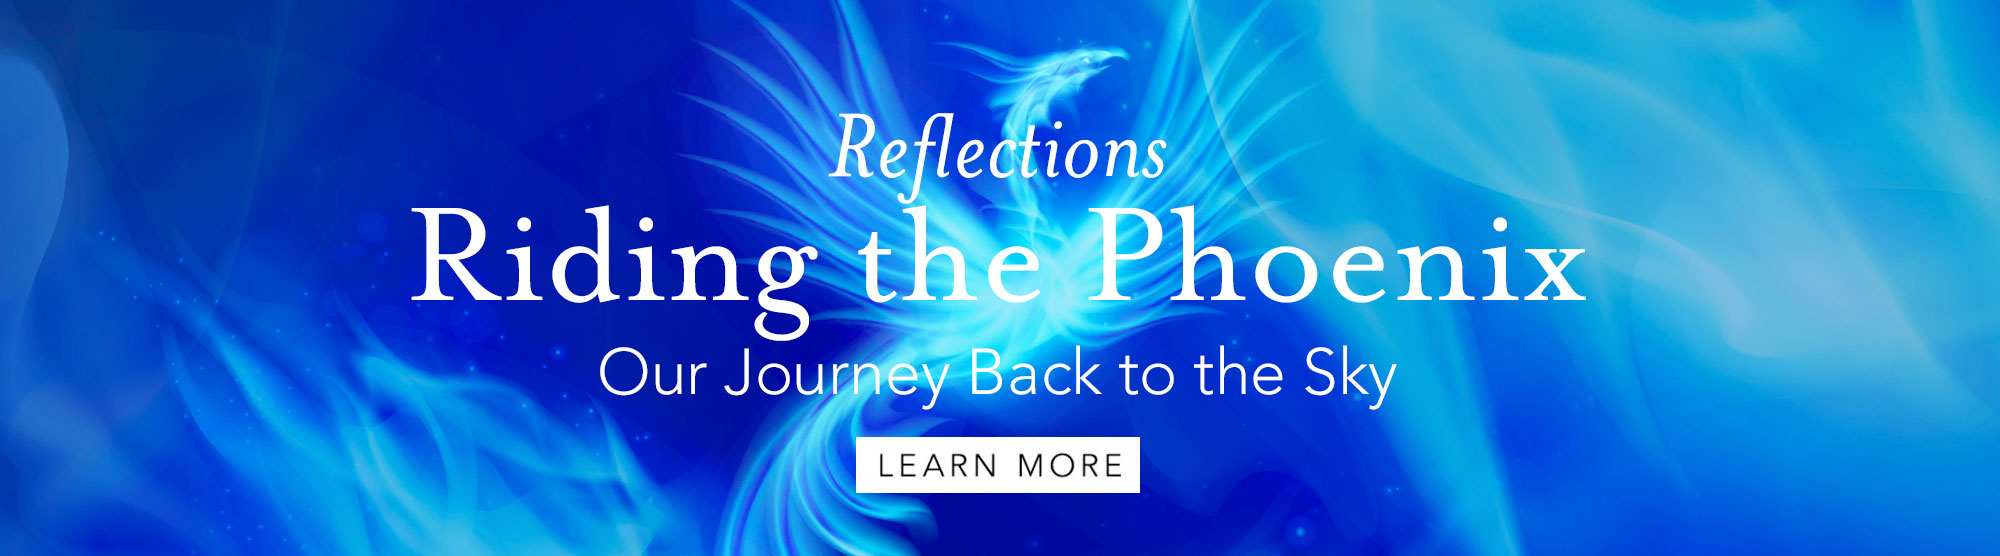 Reflections: Riding the Phoenix